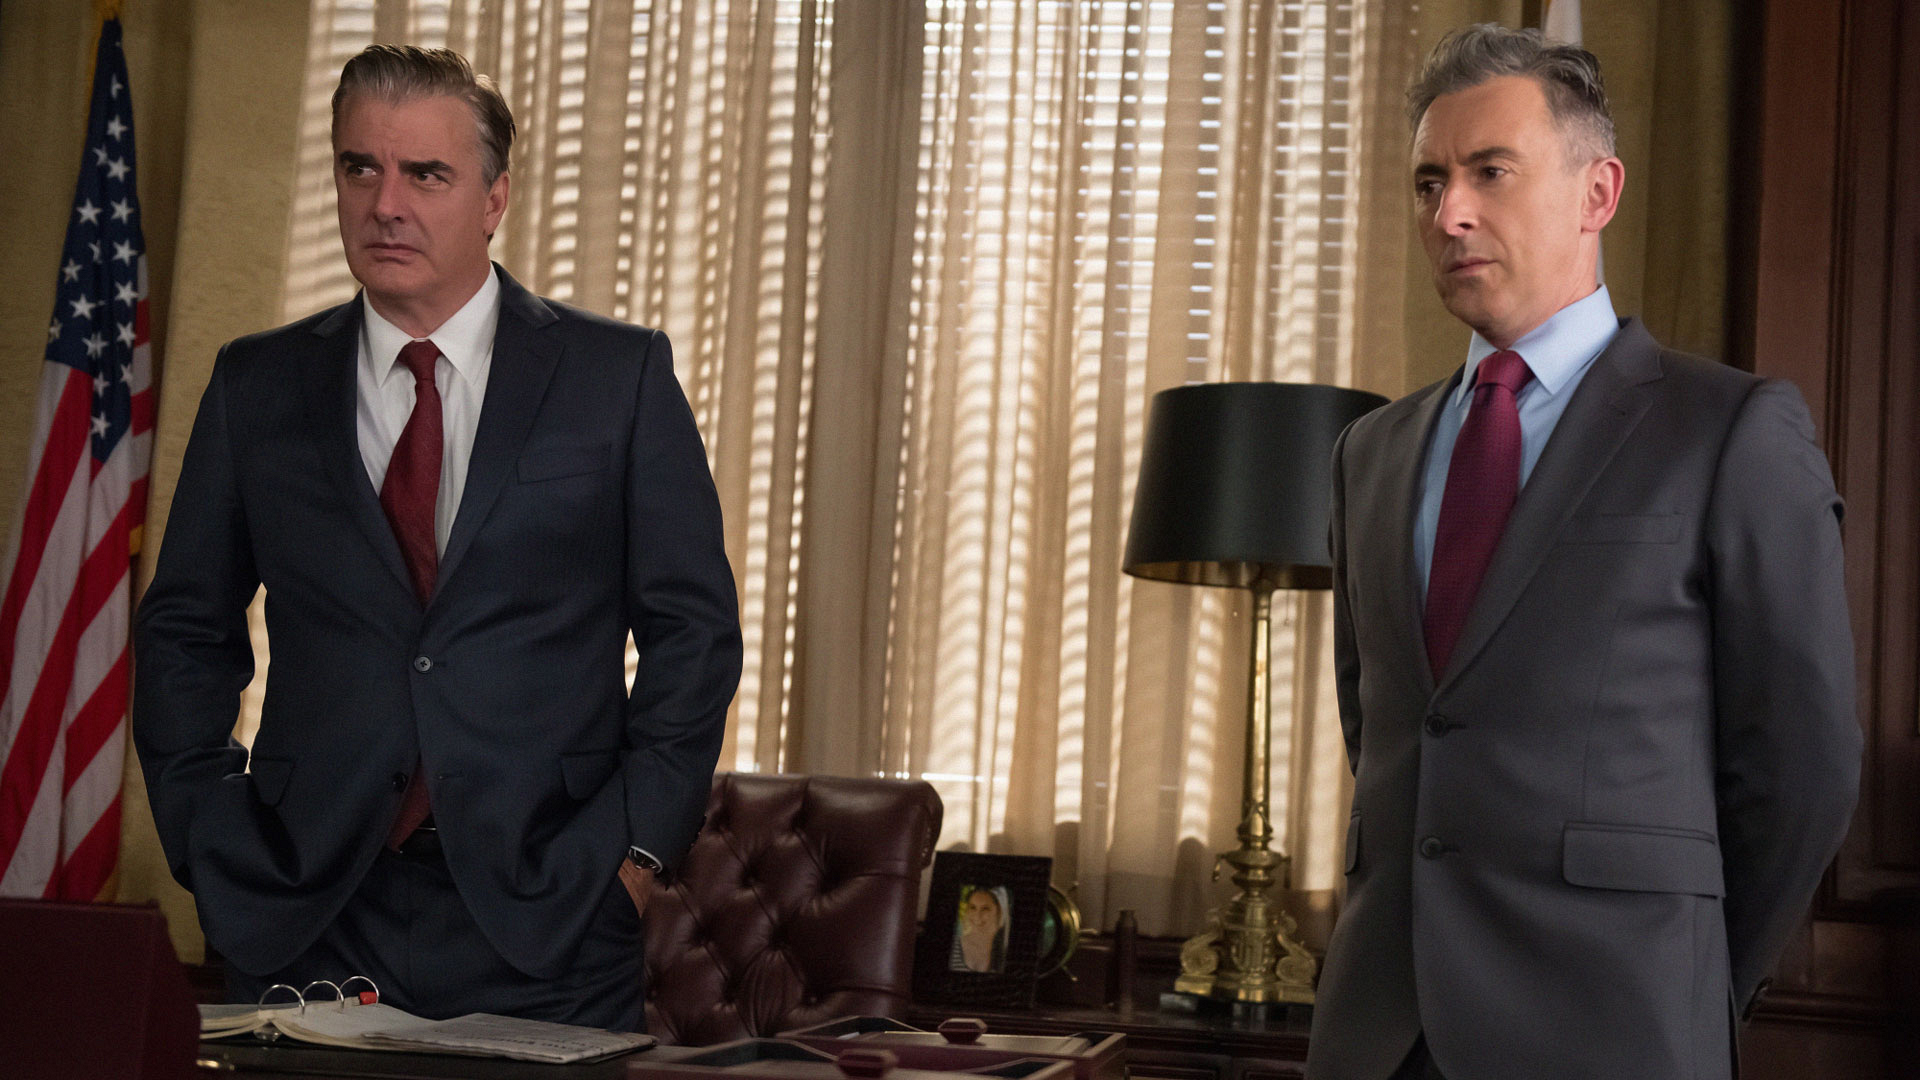 Chris Noth as Peter Florrick and Alan Cumming as Eli Gold